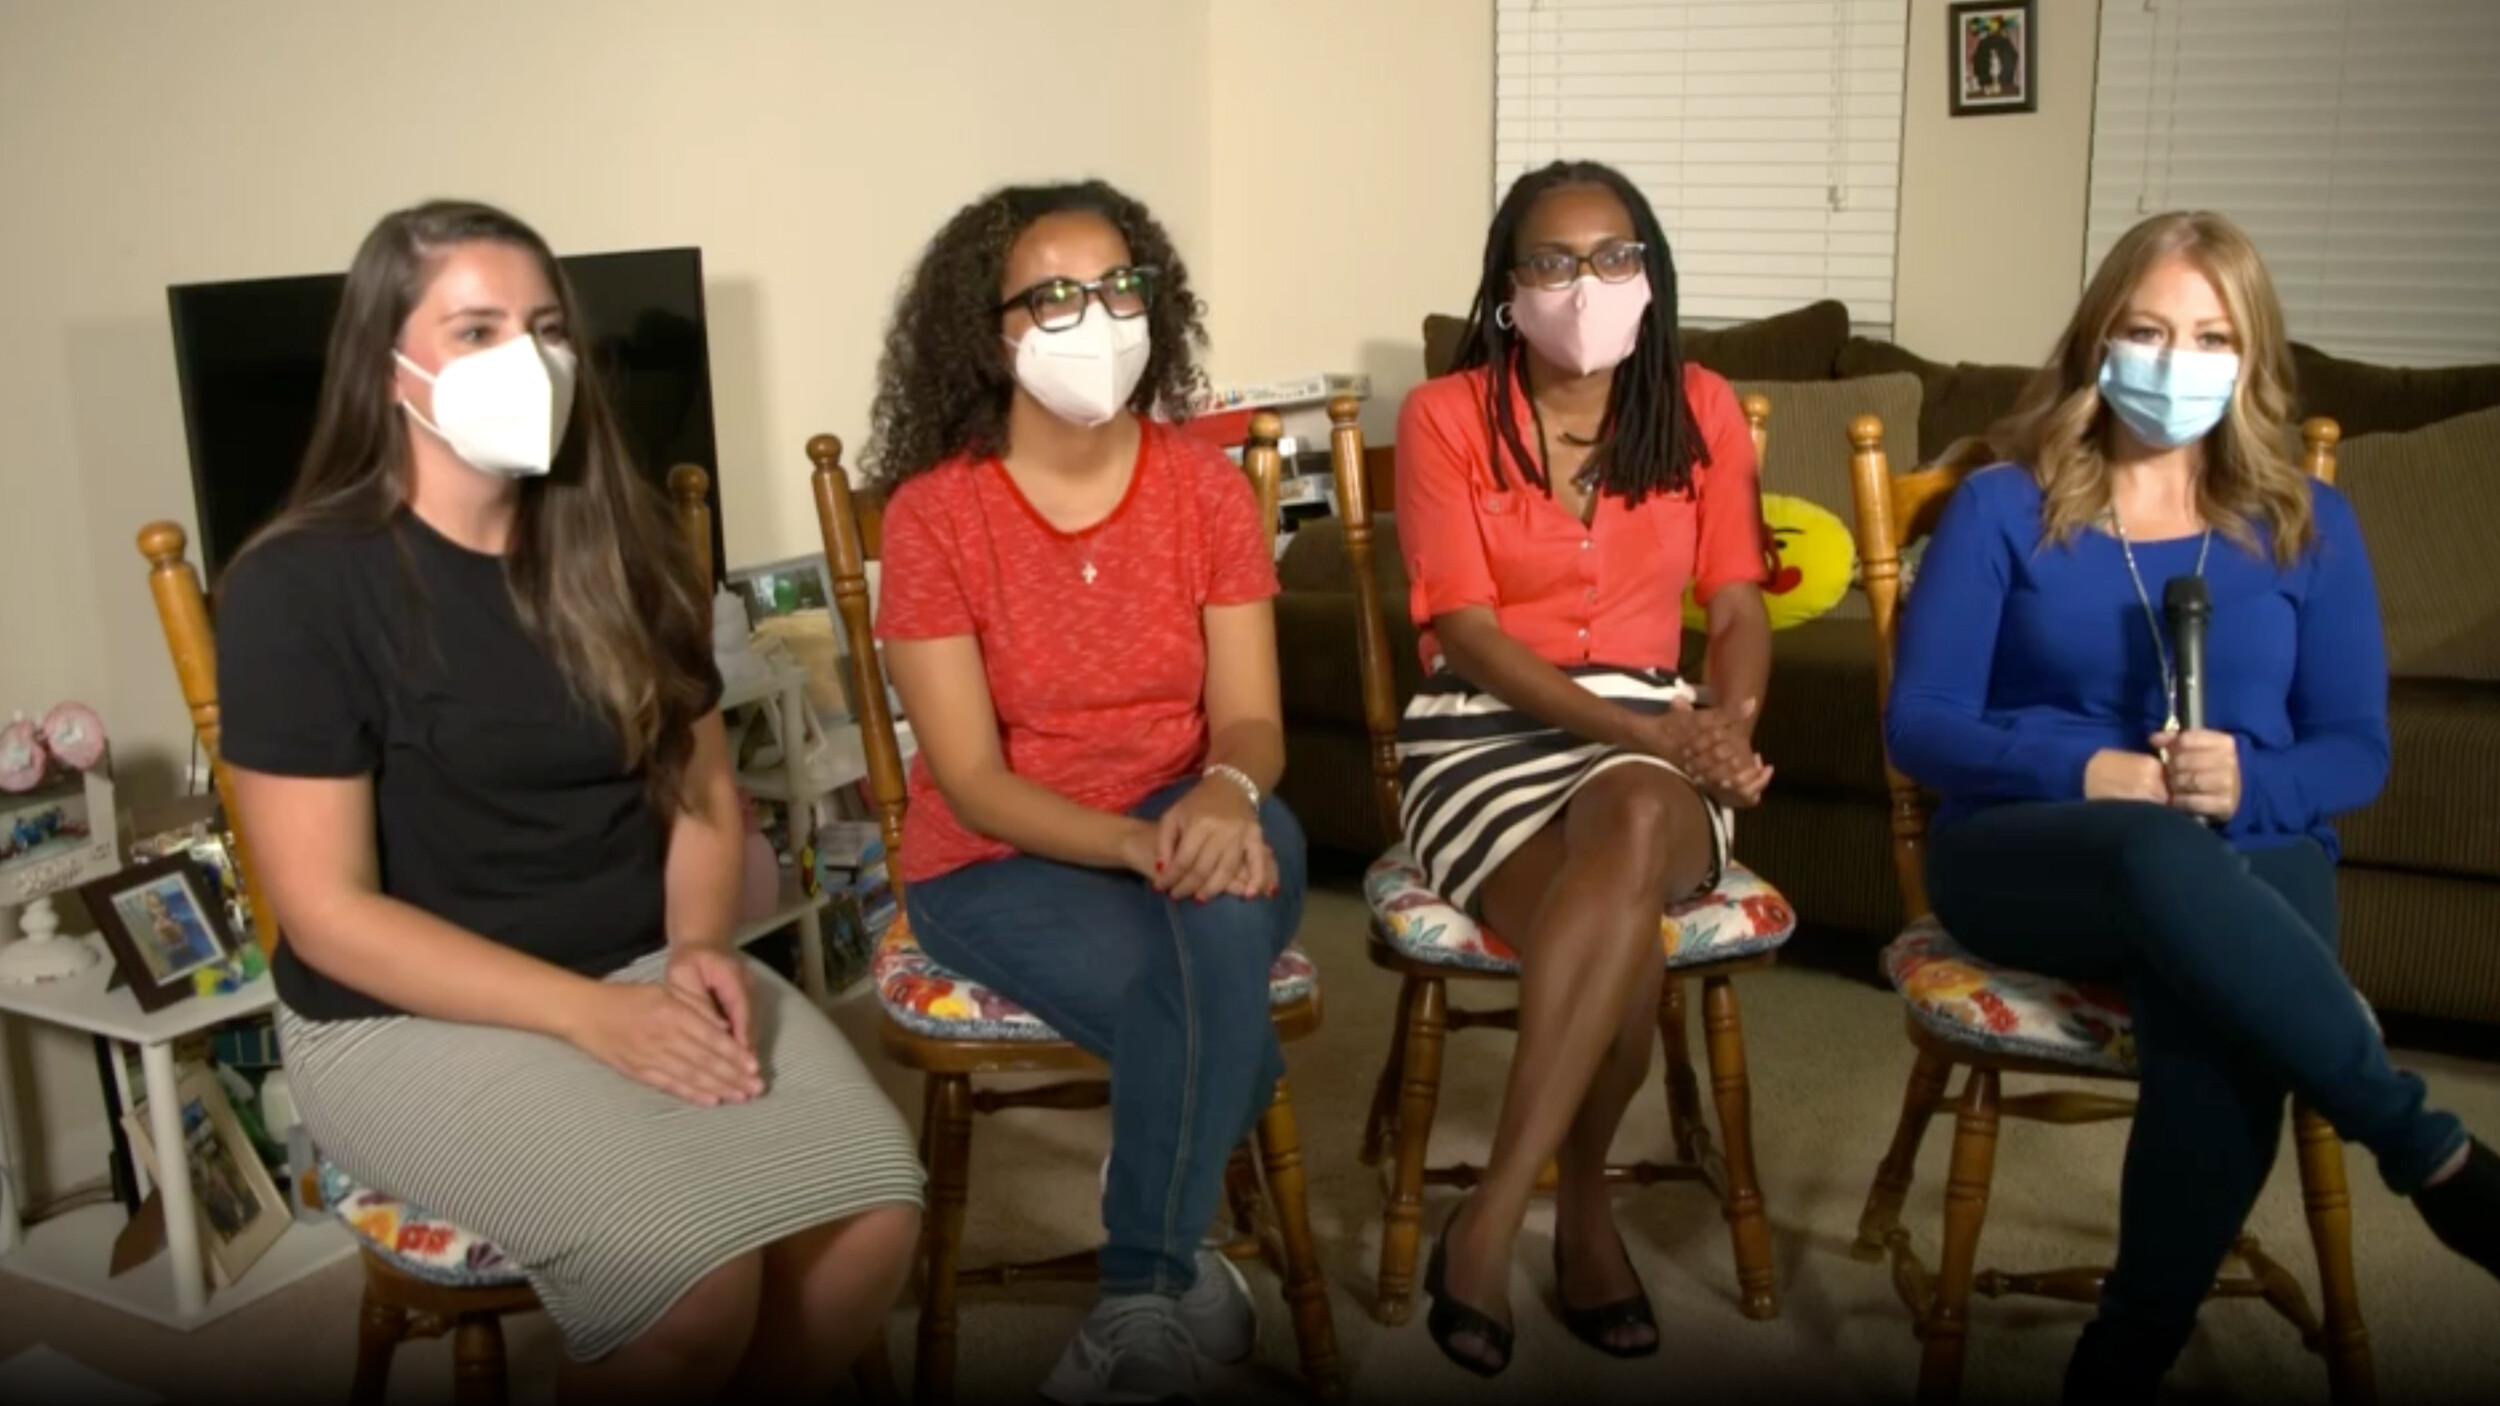 Covid-19 cases at this Texas school are spiking, yet officials buck local mask mandate